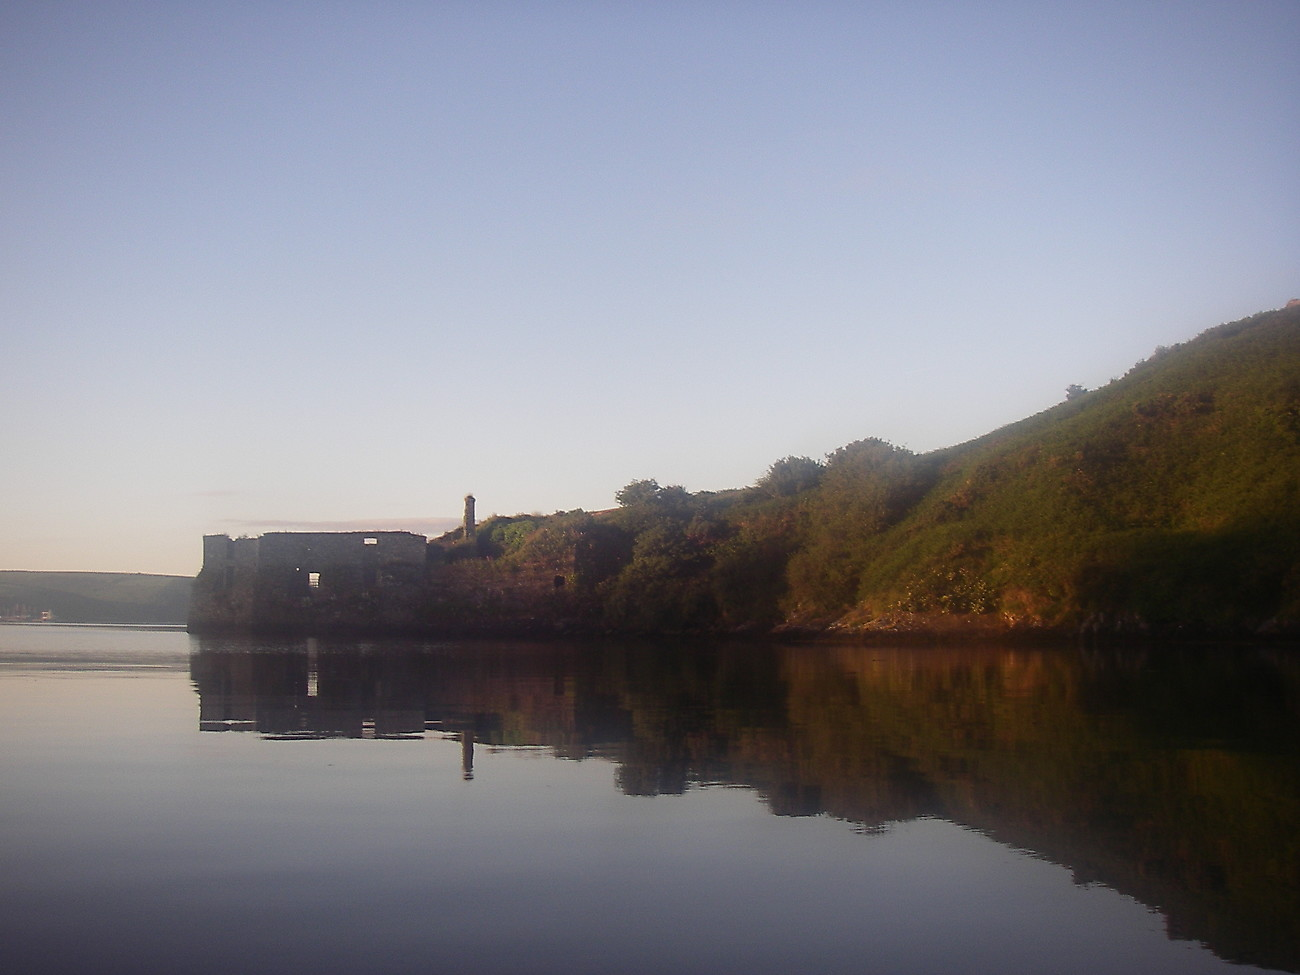 The Blockhouse, Kinsale.